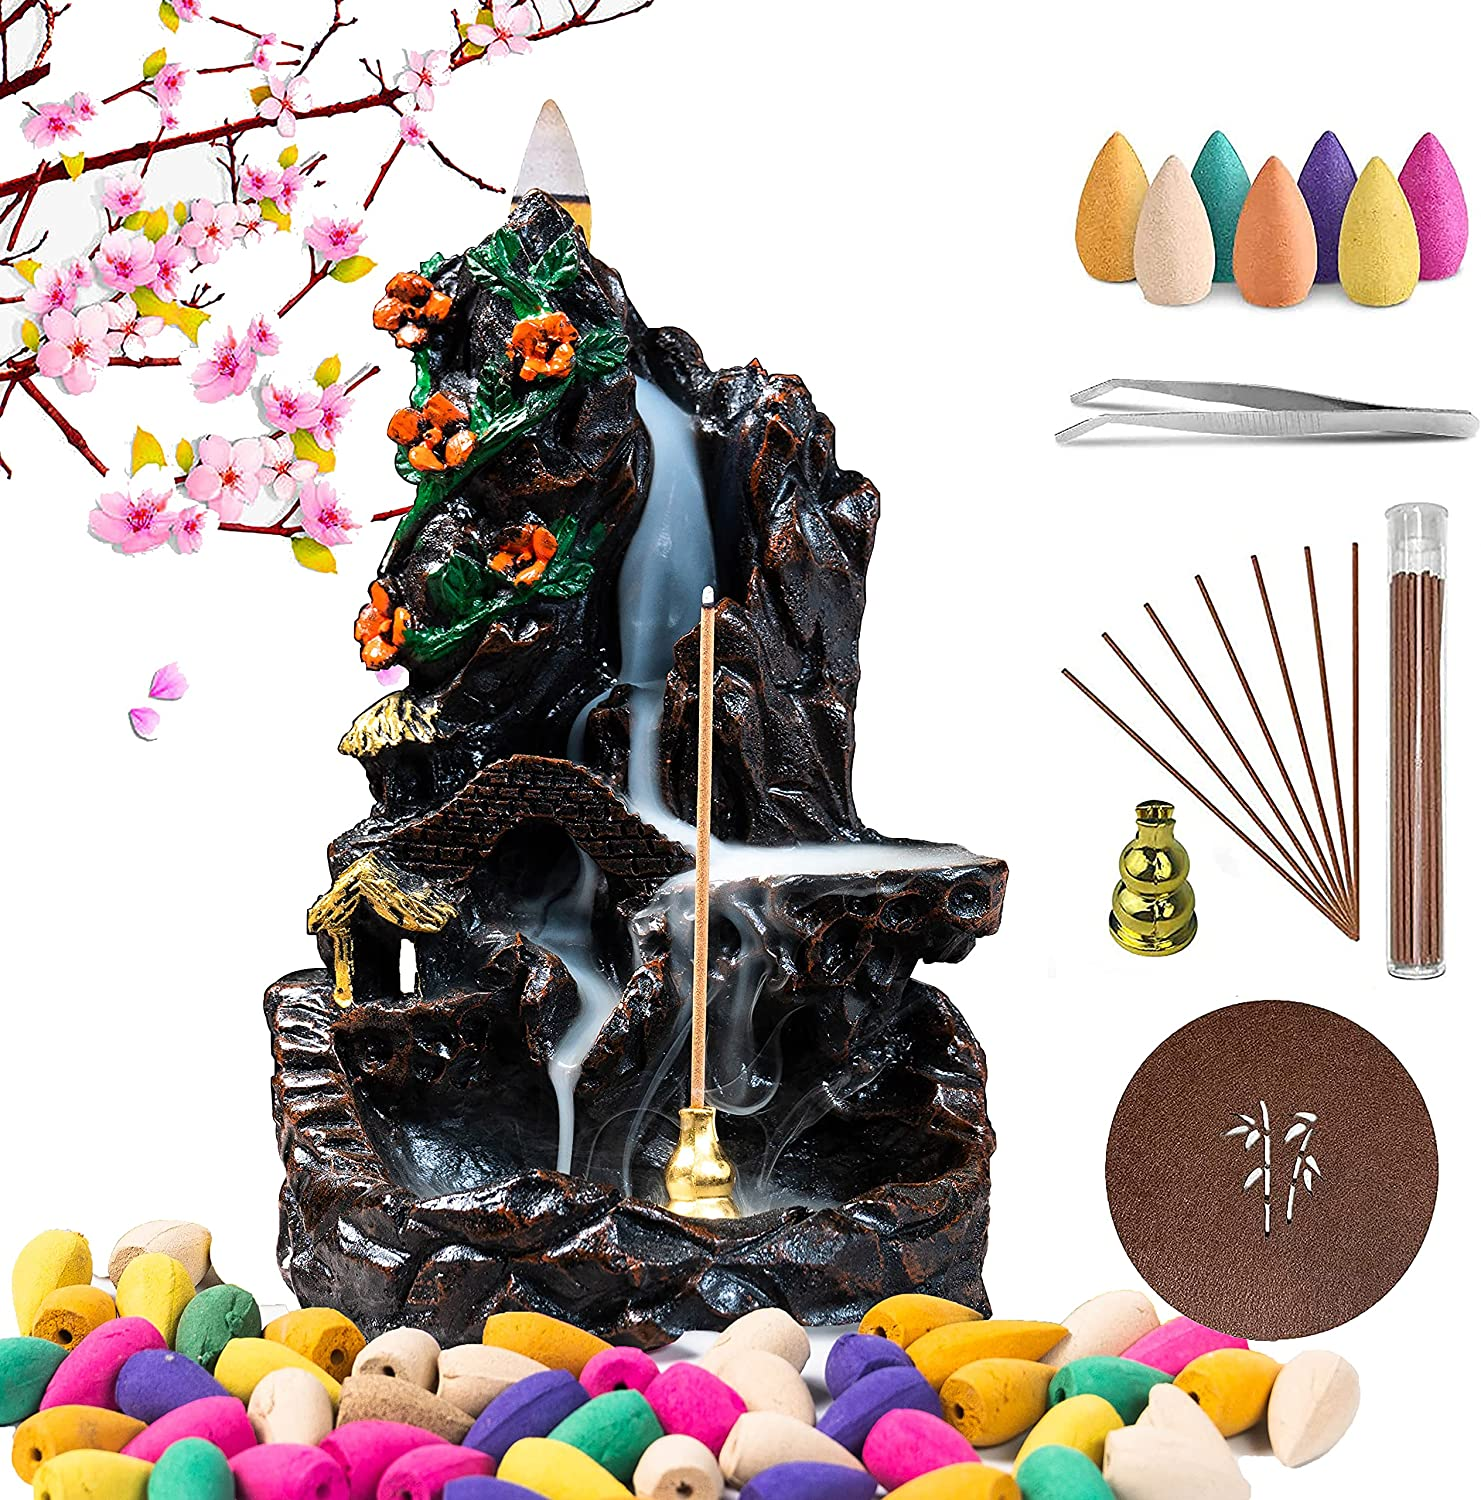 ZWCIBN Backflow Incense Burner, Waterfall Incense Burner with 120 Incense Cones and 30 Incense Stick, Mountain Tower Incense Holders for Home Decor Aromatherapy Ornament.